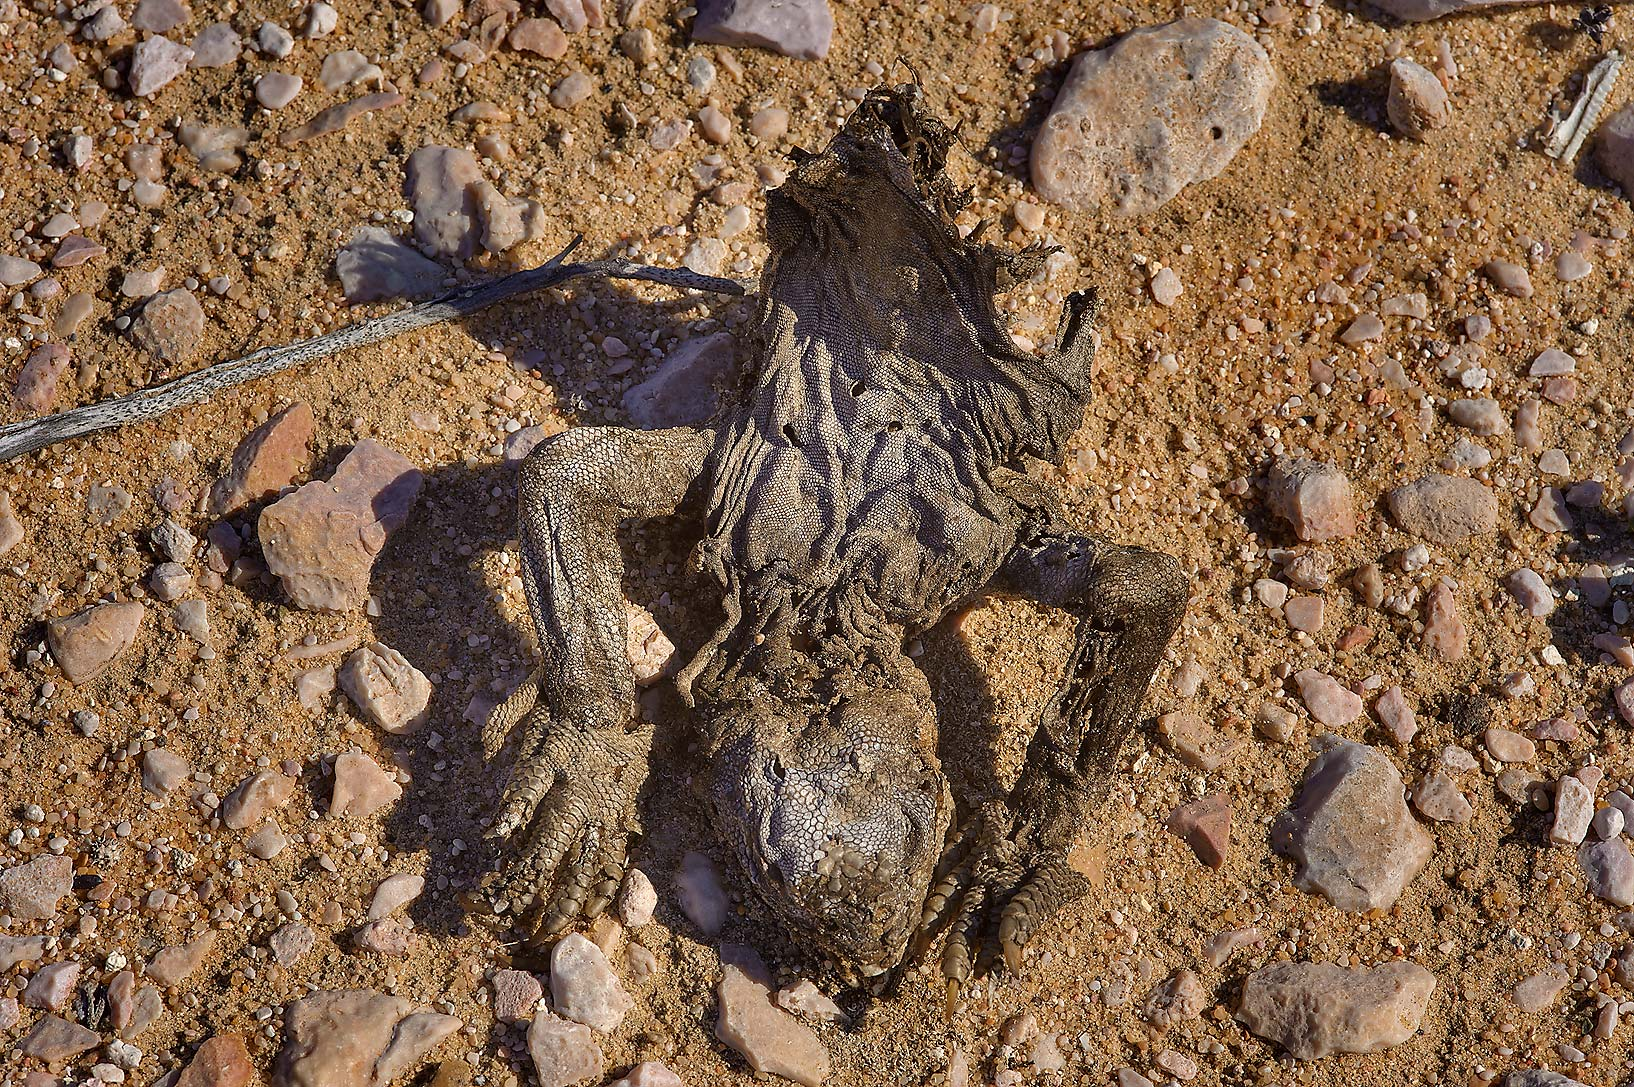 Carcass of dhub (spiny-tailed agama) near a road to Sawda Natheel in southern Qatar